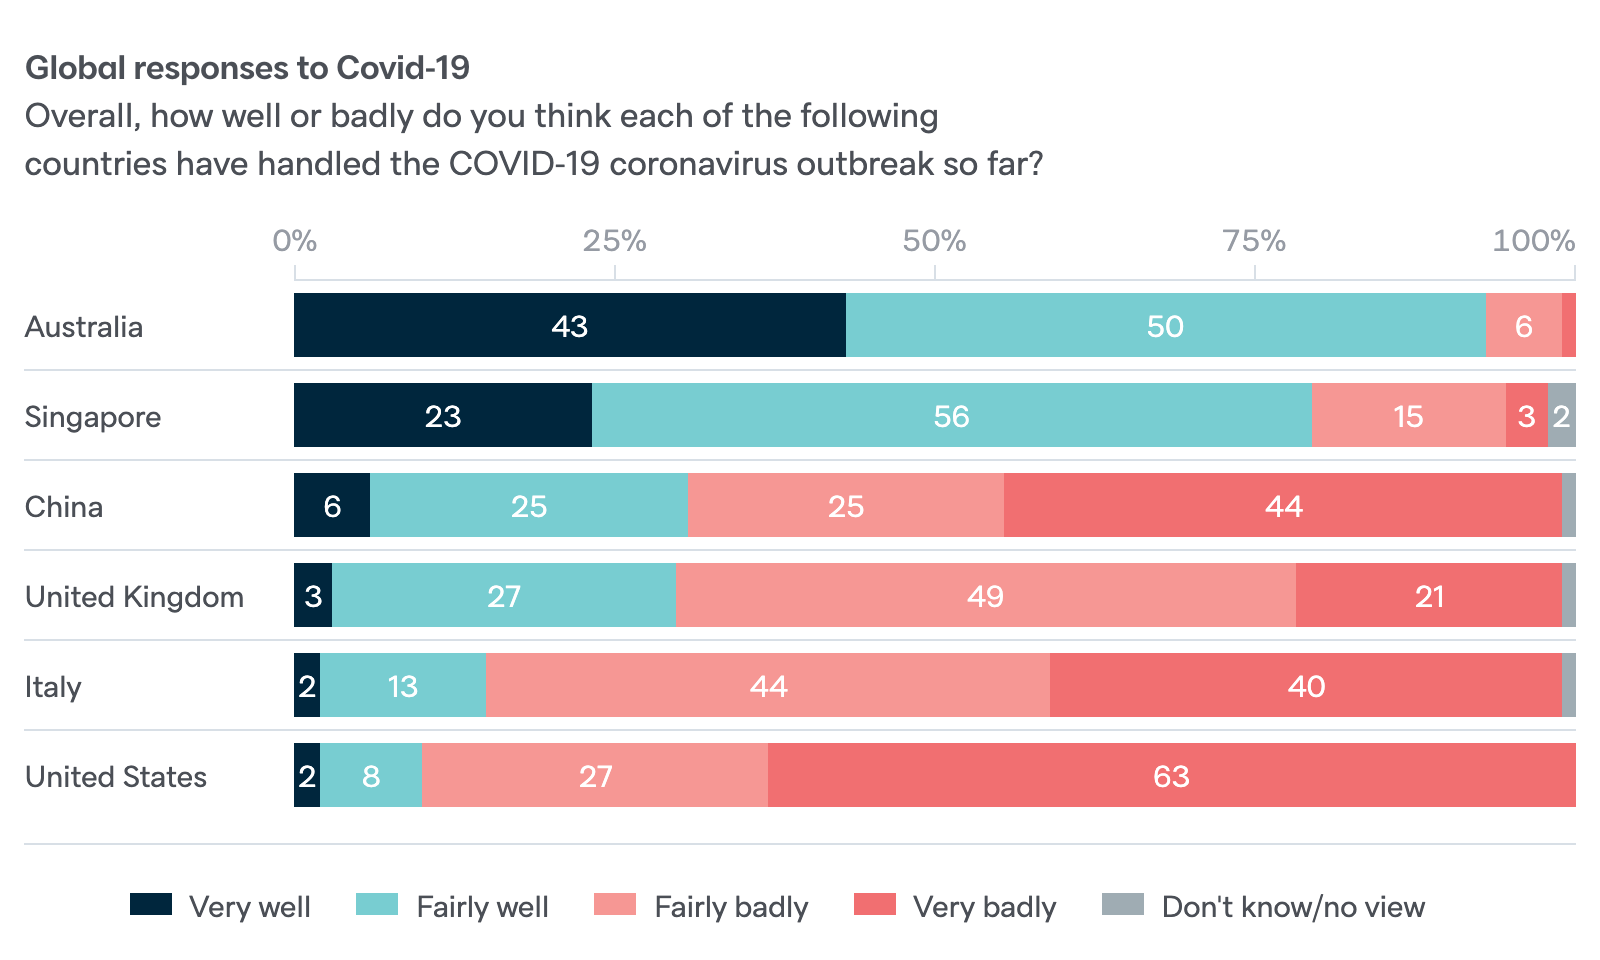 Global responses to COVID-19